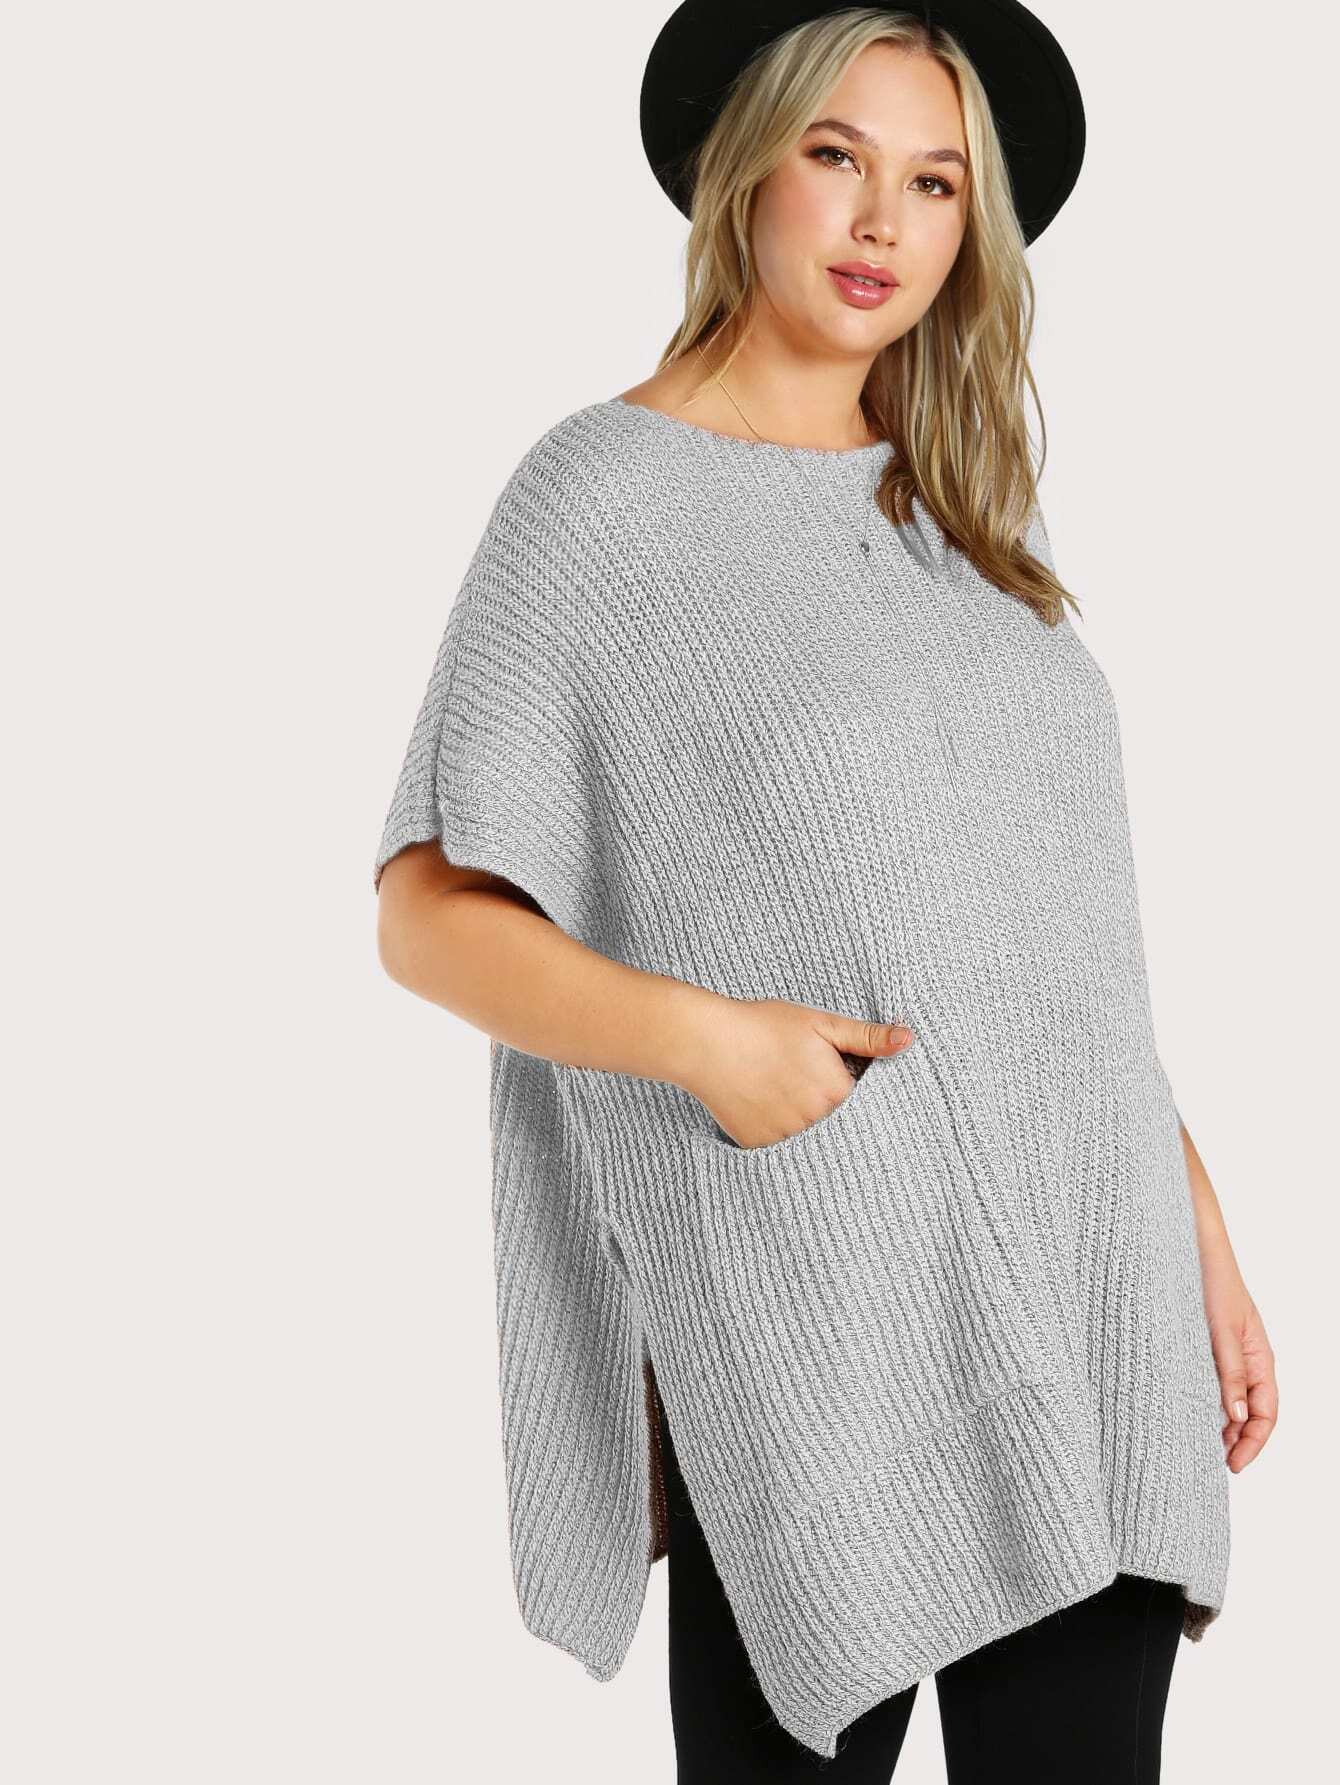 Ribbed Knitted Poncho PINK mmc-ao675-pnk